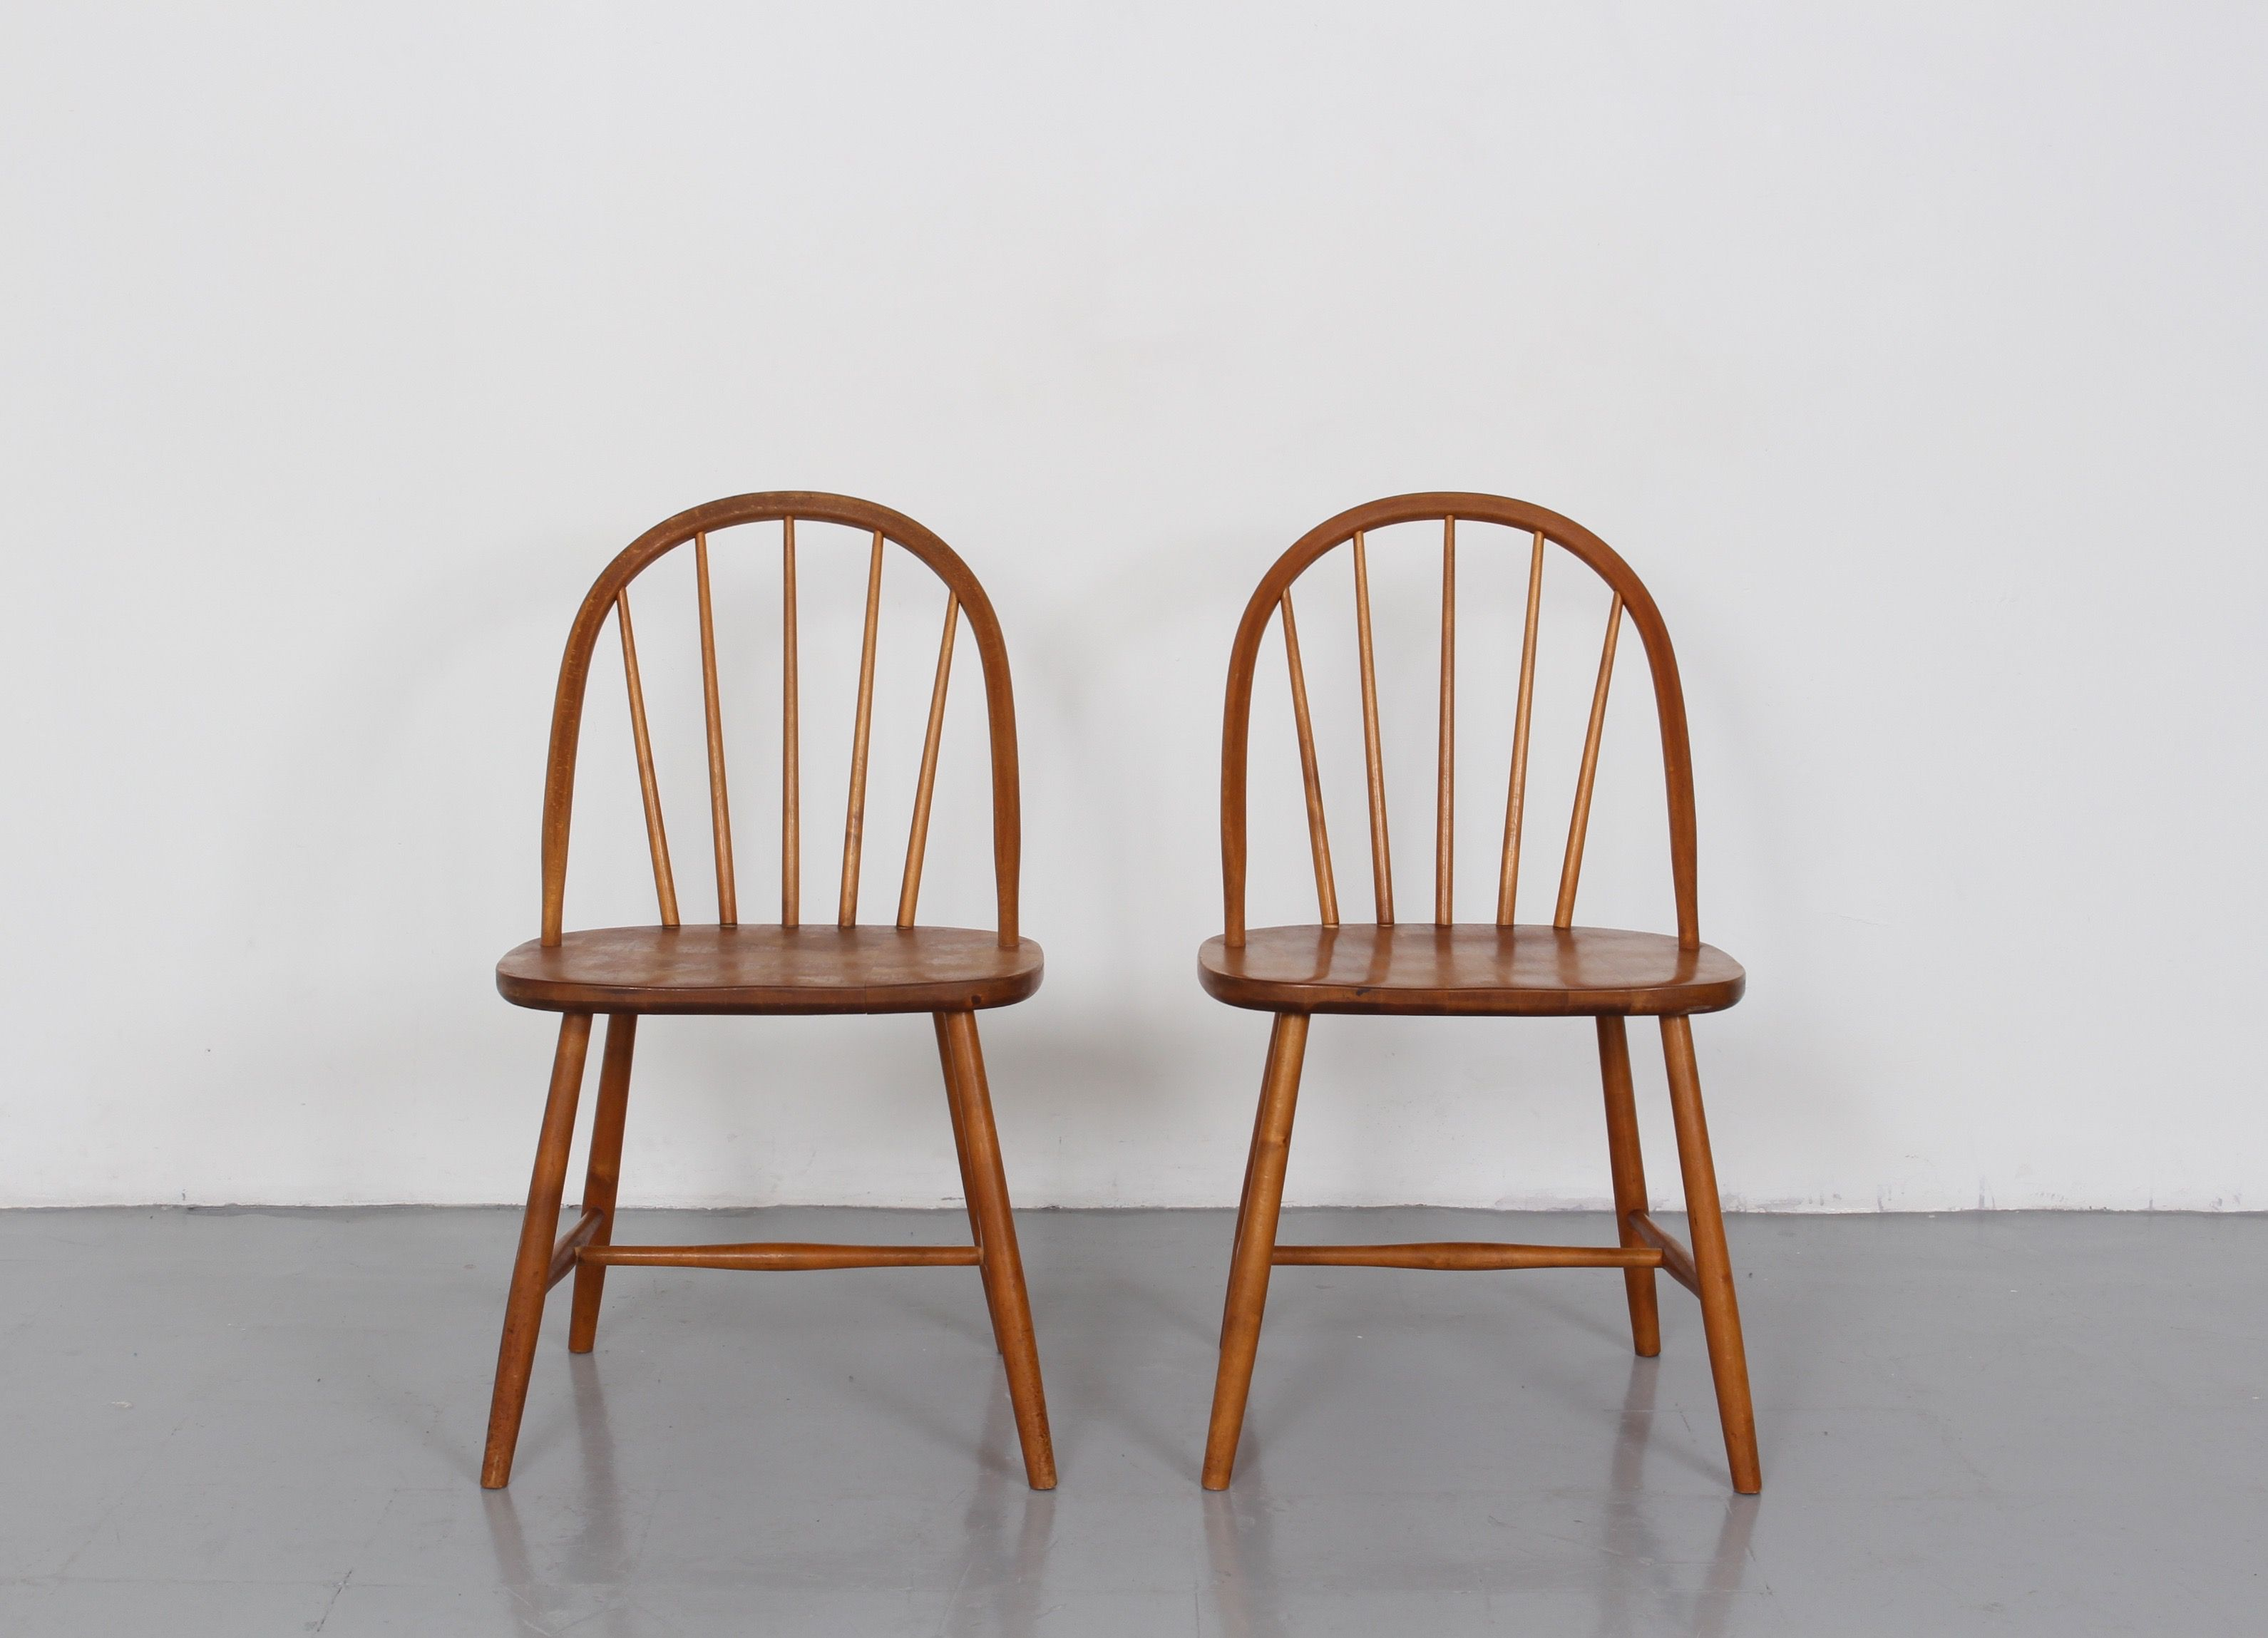 Pair Of Beech Spindle Back Chairs In The Manner Of Ercol